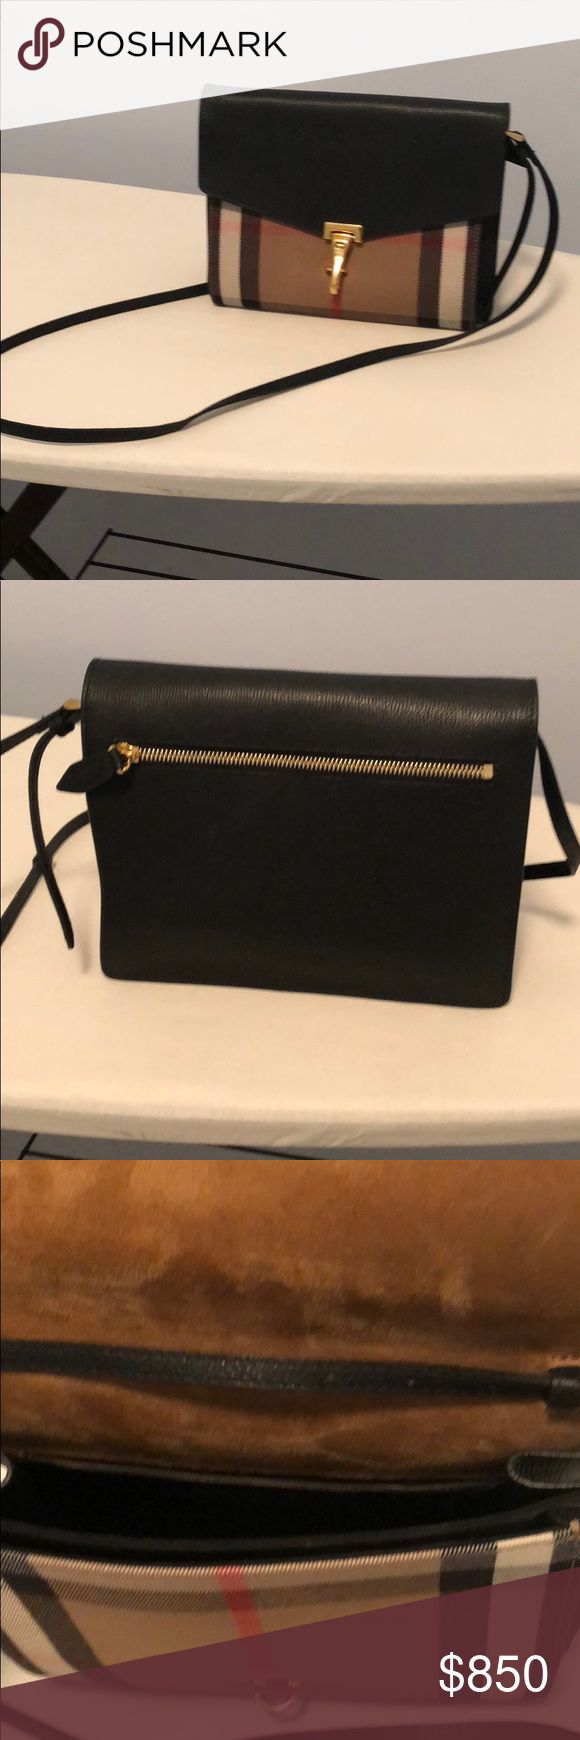 Burberry LL SM Mackenzie Crossbody Burberry Crossbody bag purchased at Burberry store Towson, MD. Bag was purchased on 12/31/2017 newer style. Have box, receipt and dust cover. No trades. Burberry Bags Crossbody Bags